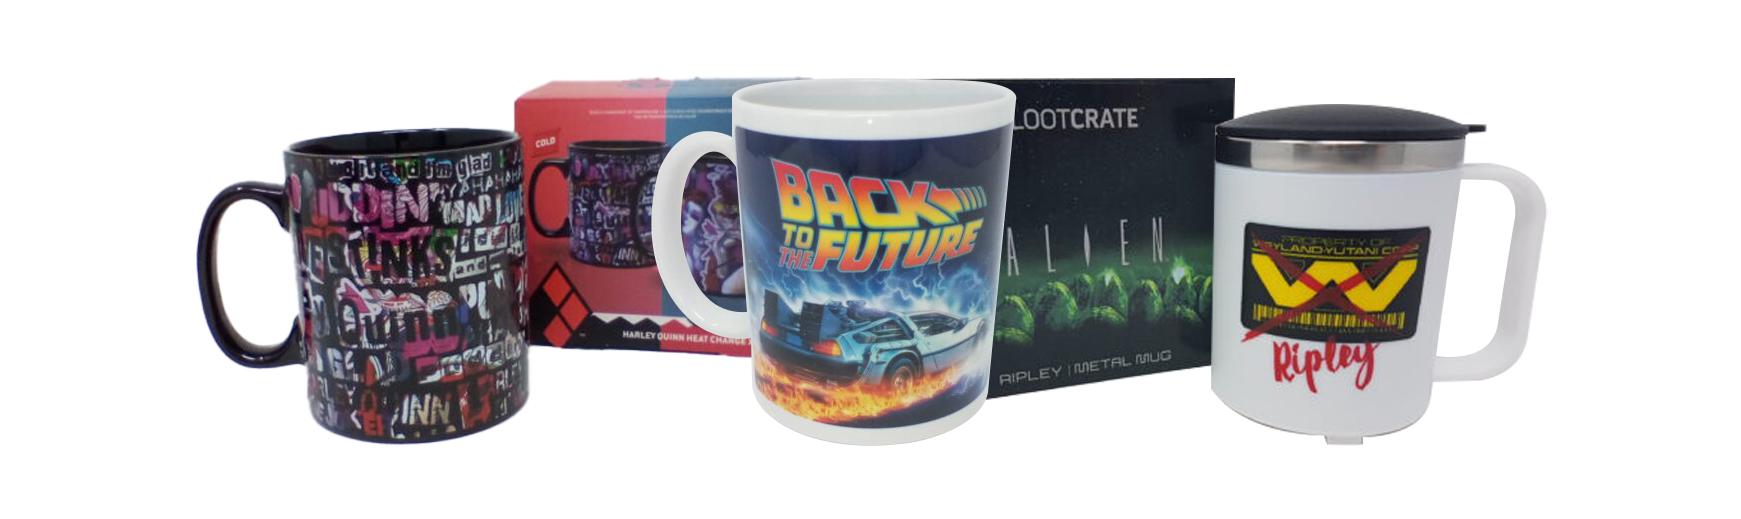 Collection of mugs available at Dorset Tech